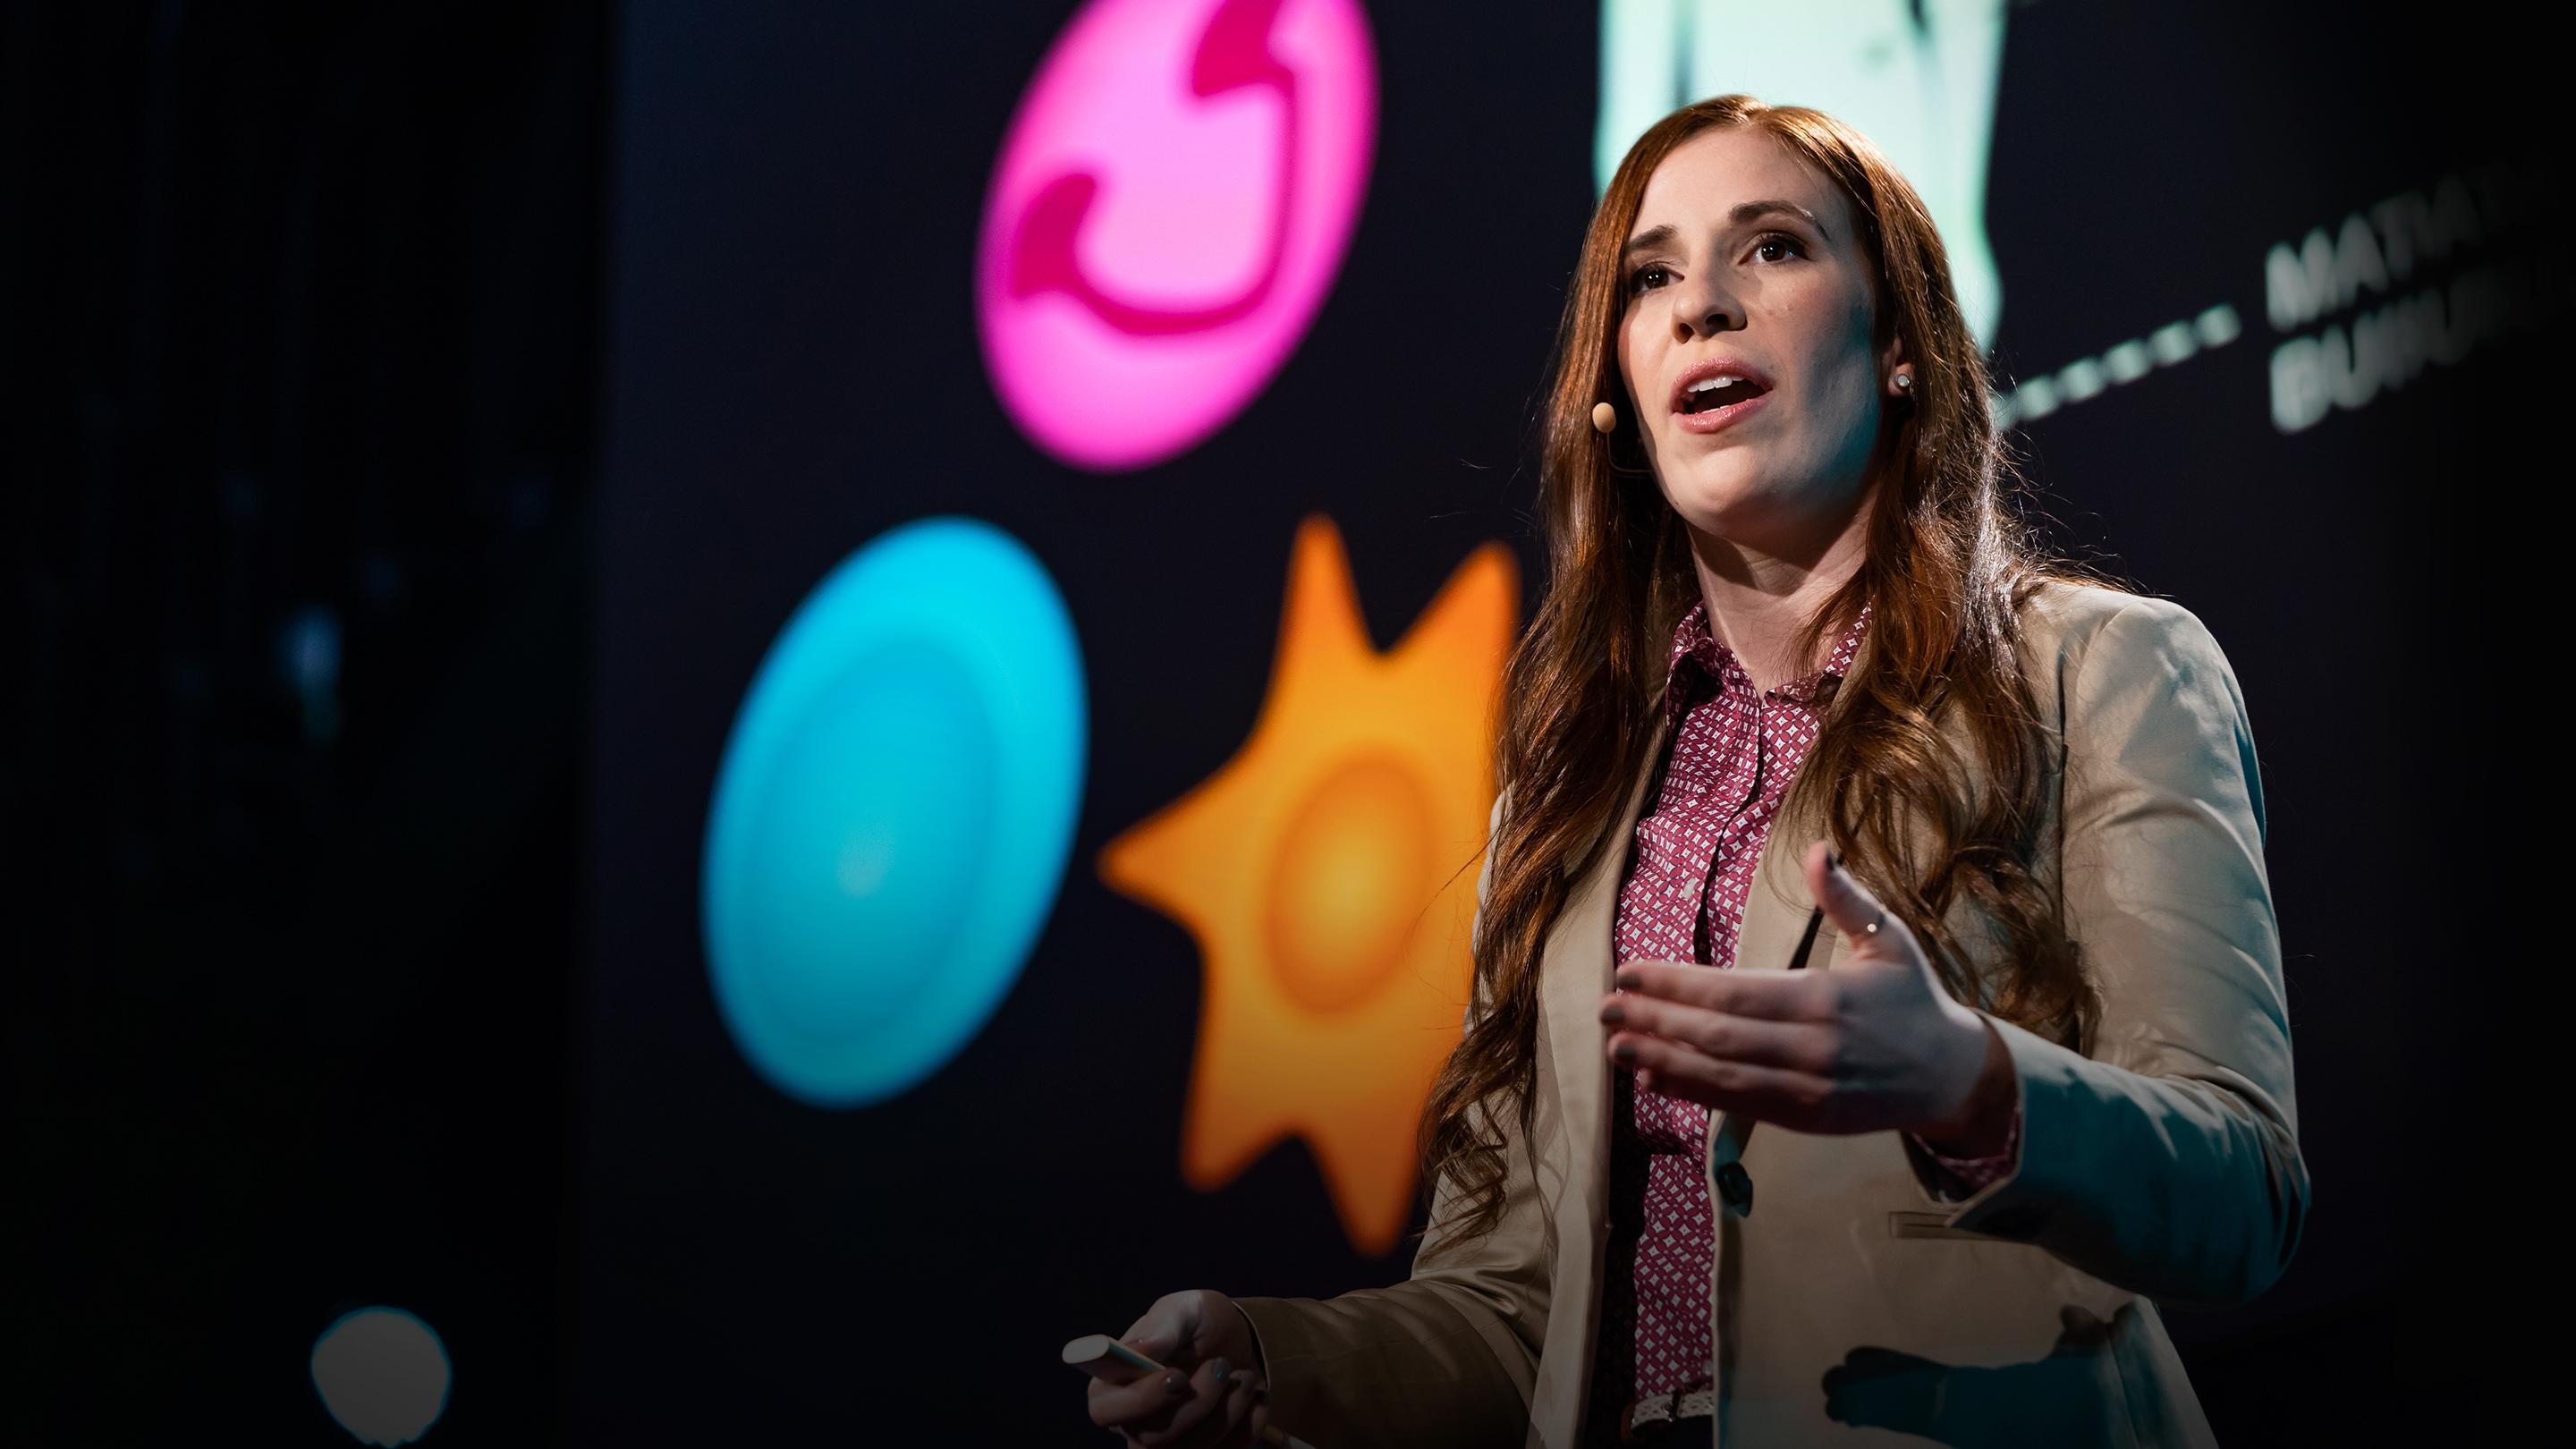 How we could teach our bodies to heal faster | Kaitlyn Sadtler